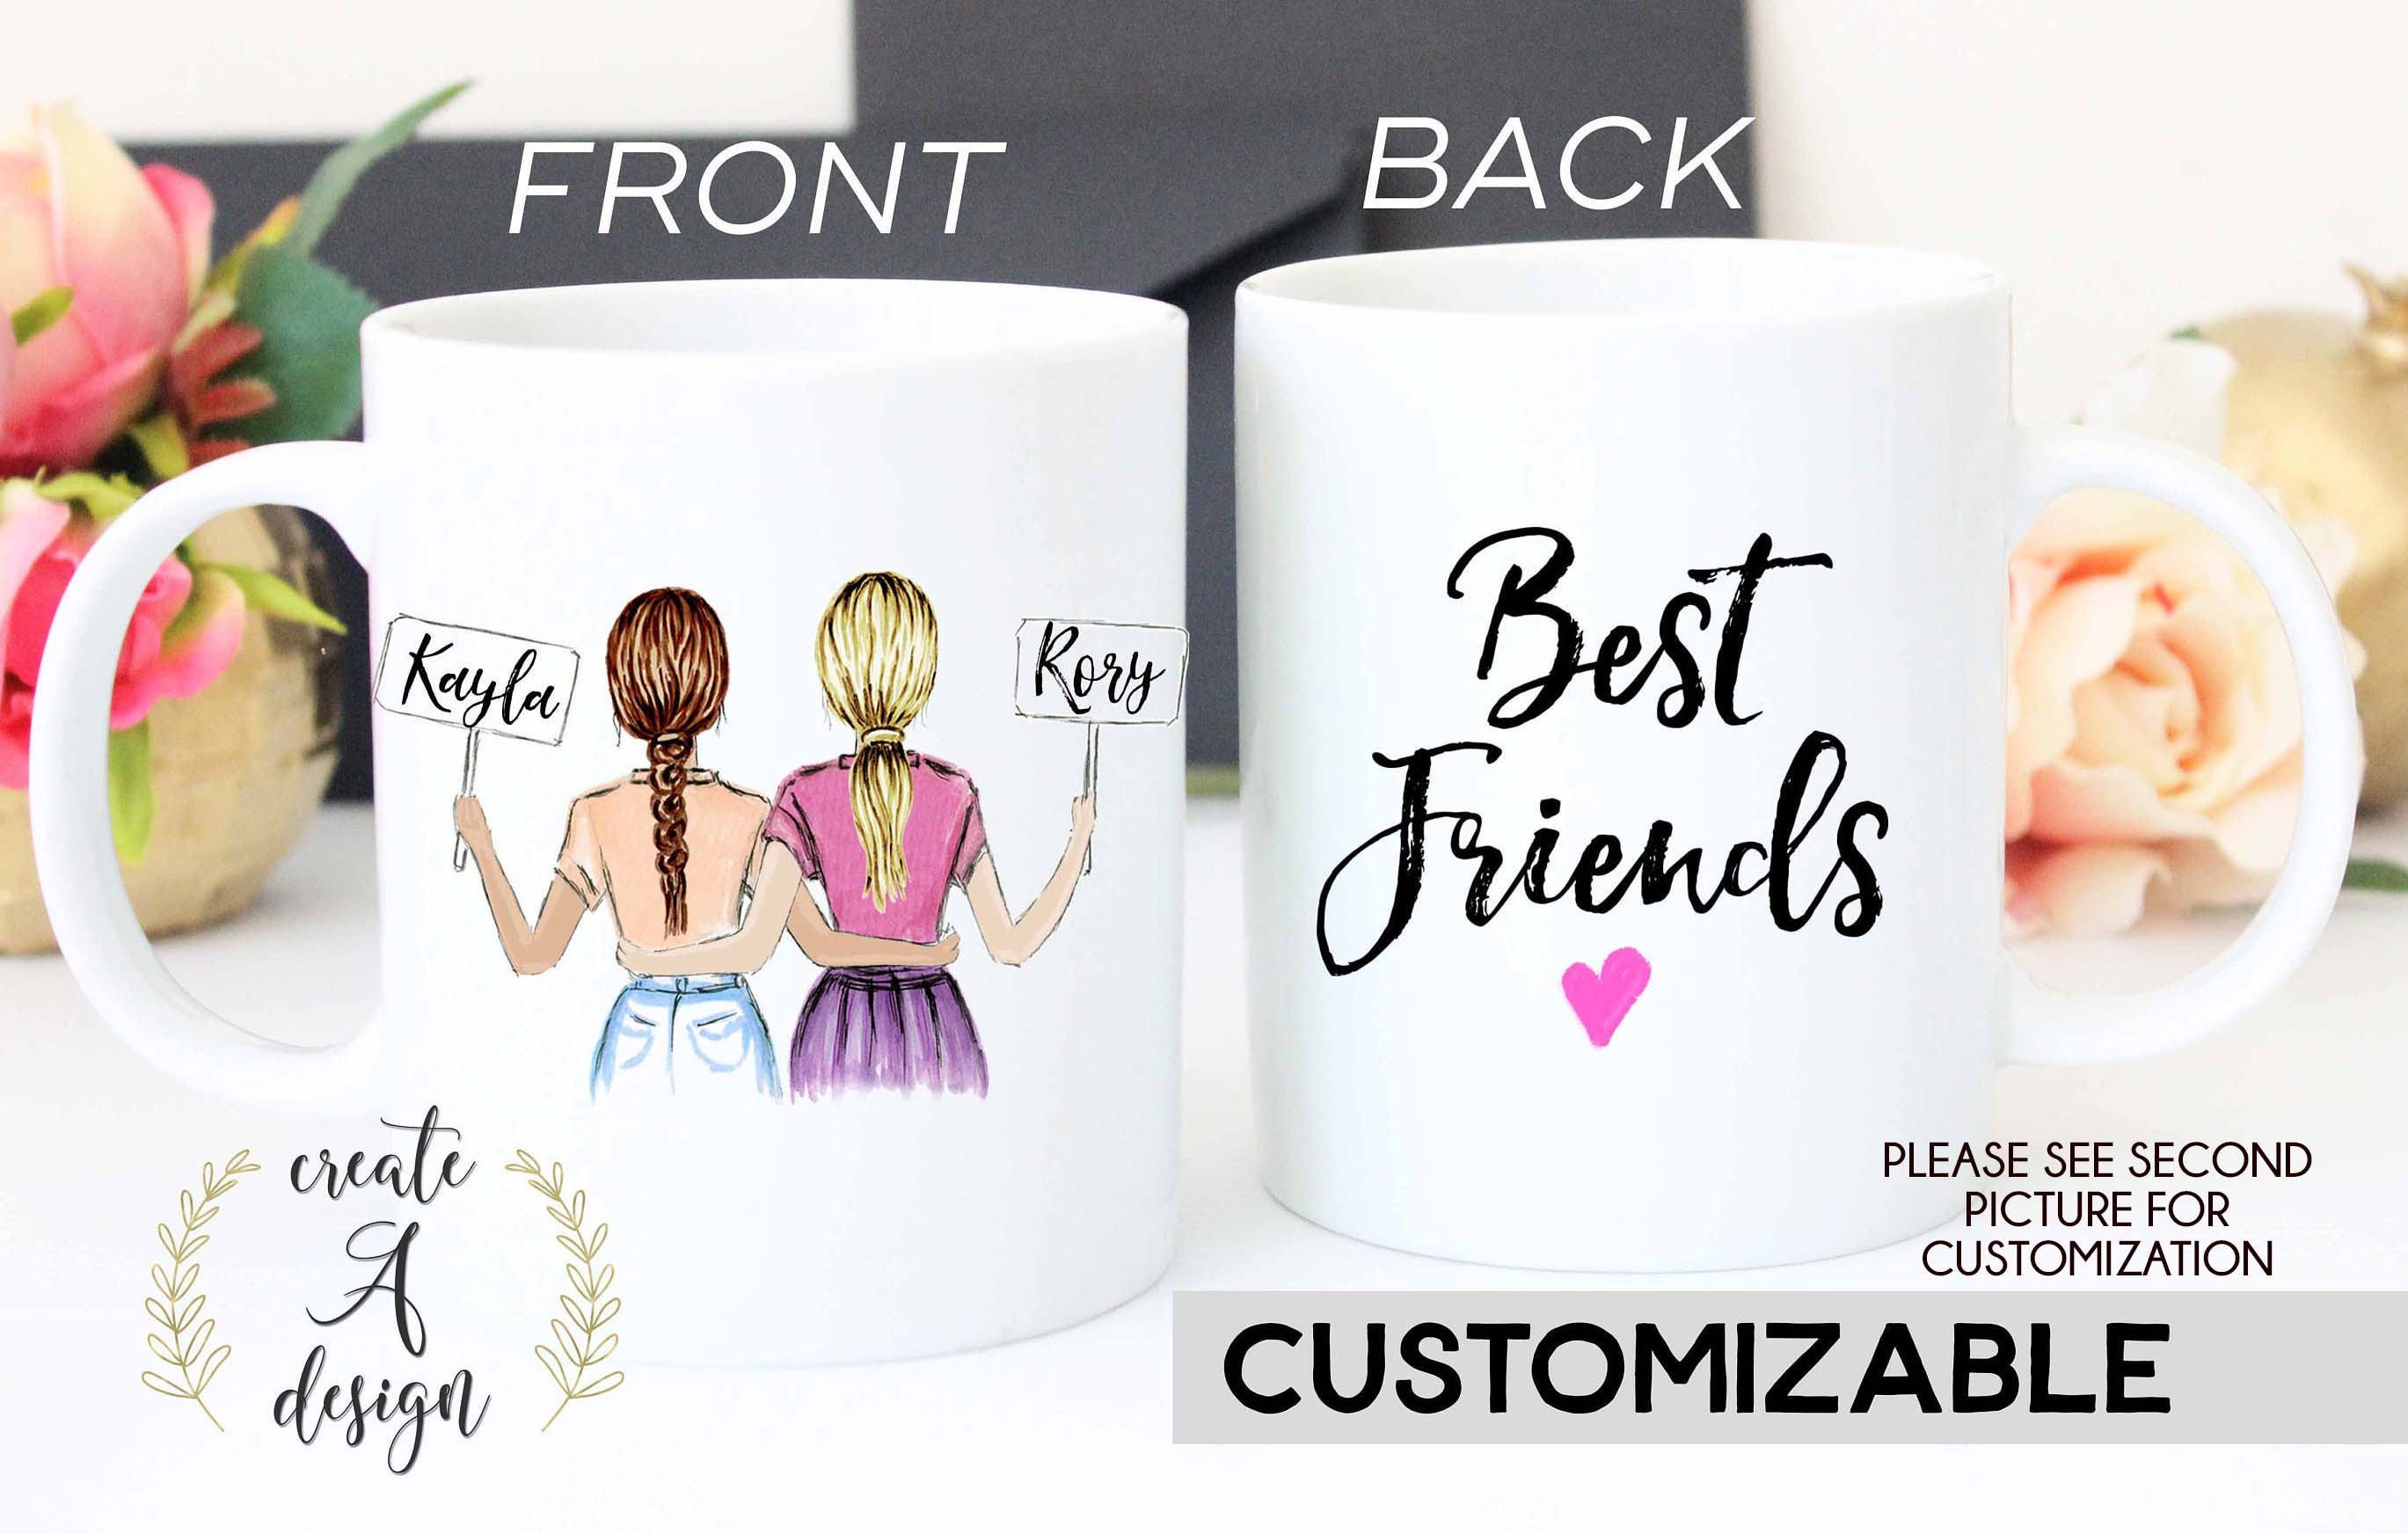 Gift For Best Friend On Wedding Day: Best Friend Gift Valentine's Day Gift Personalized